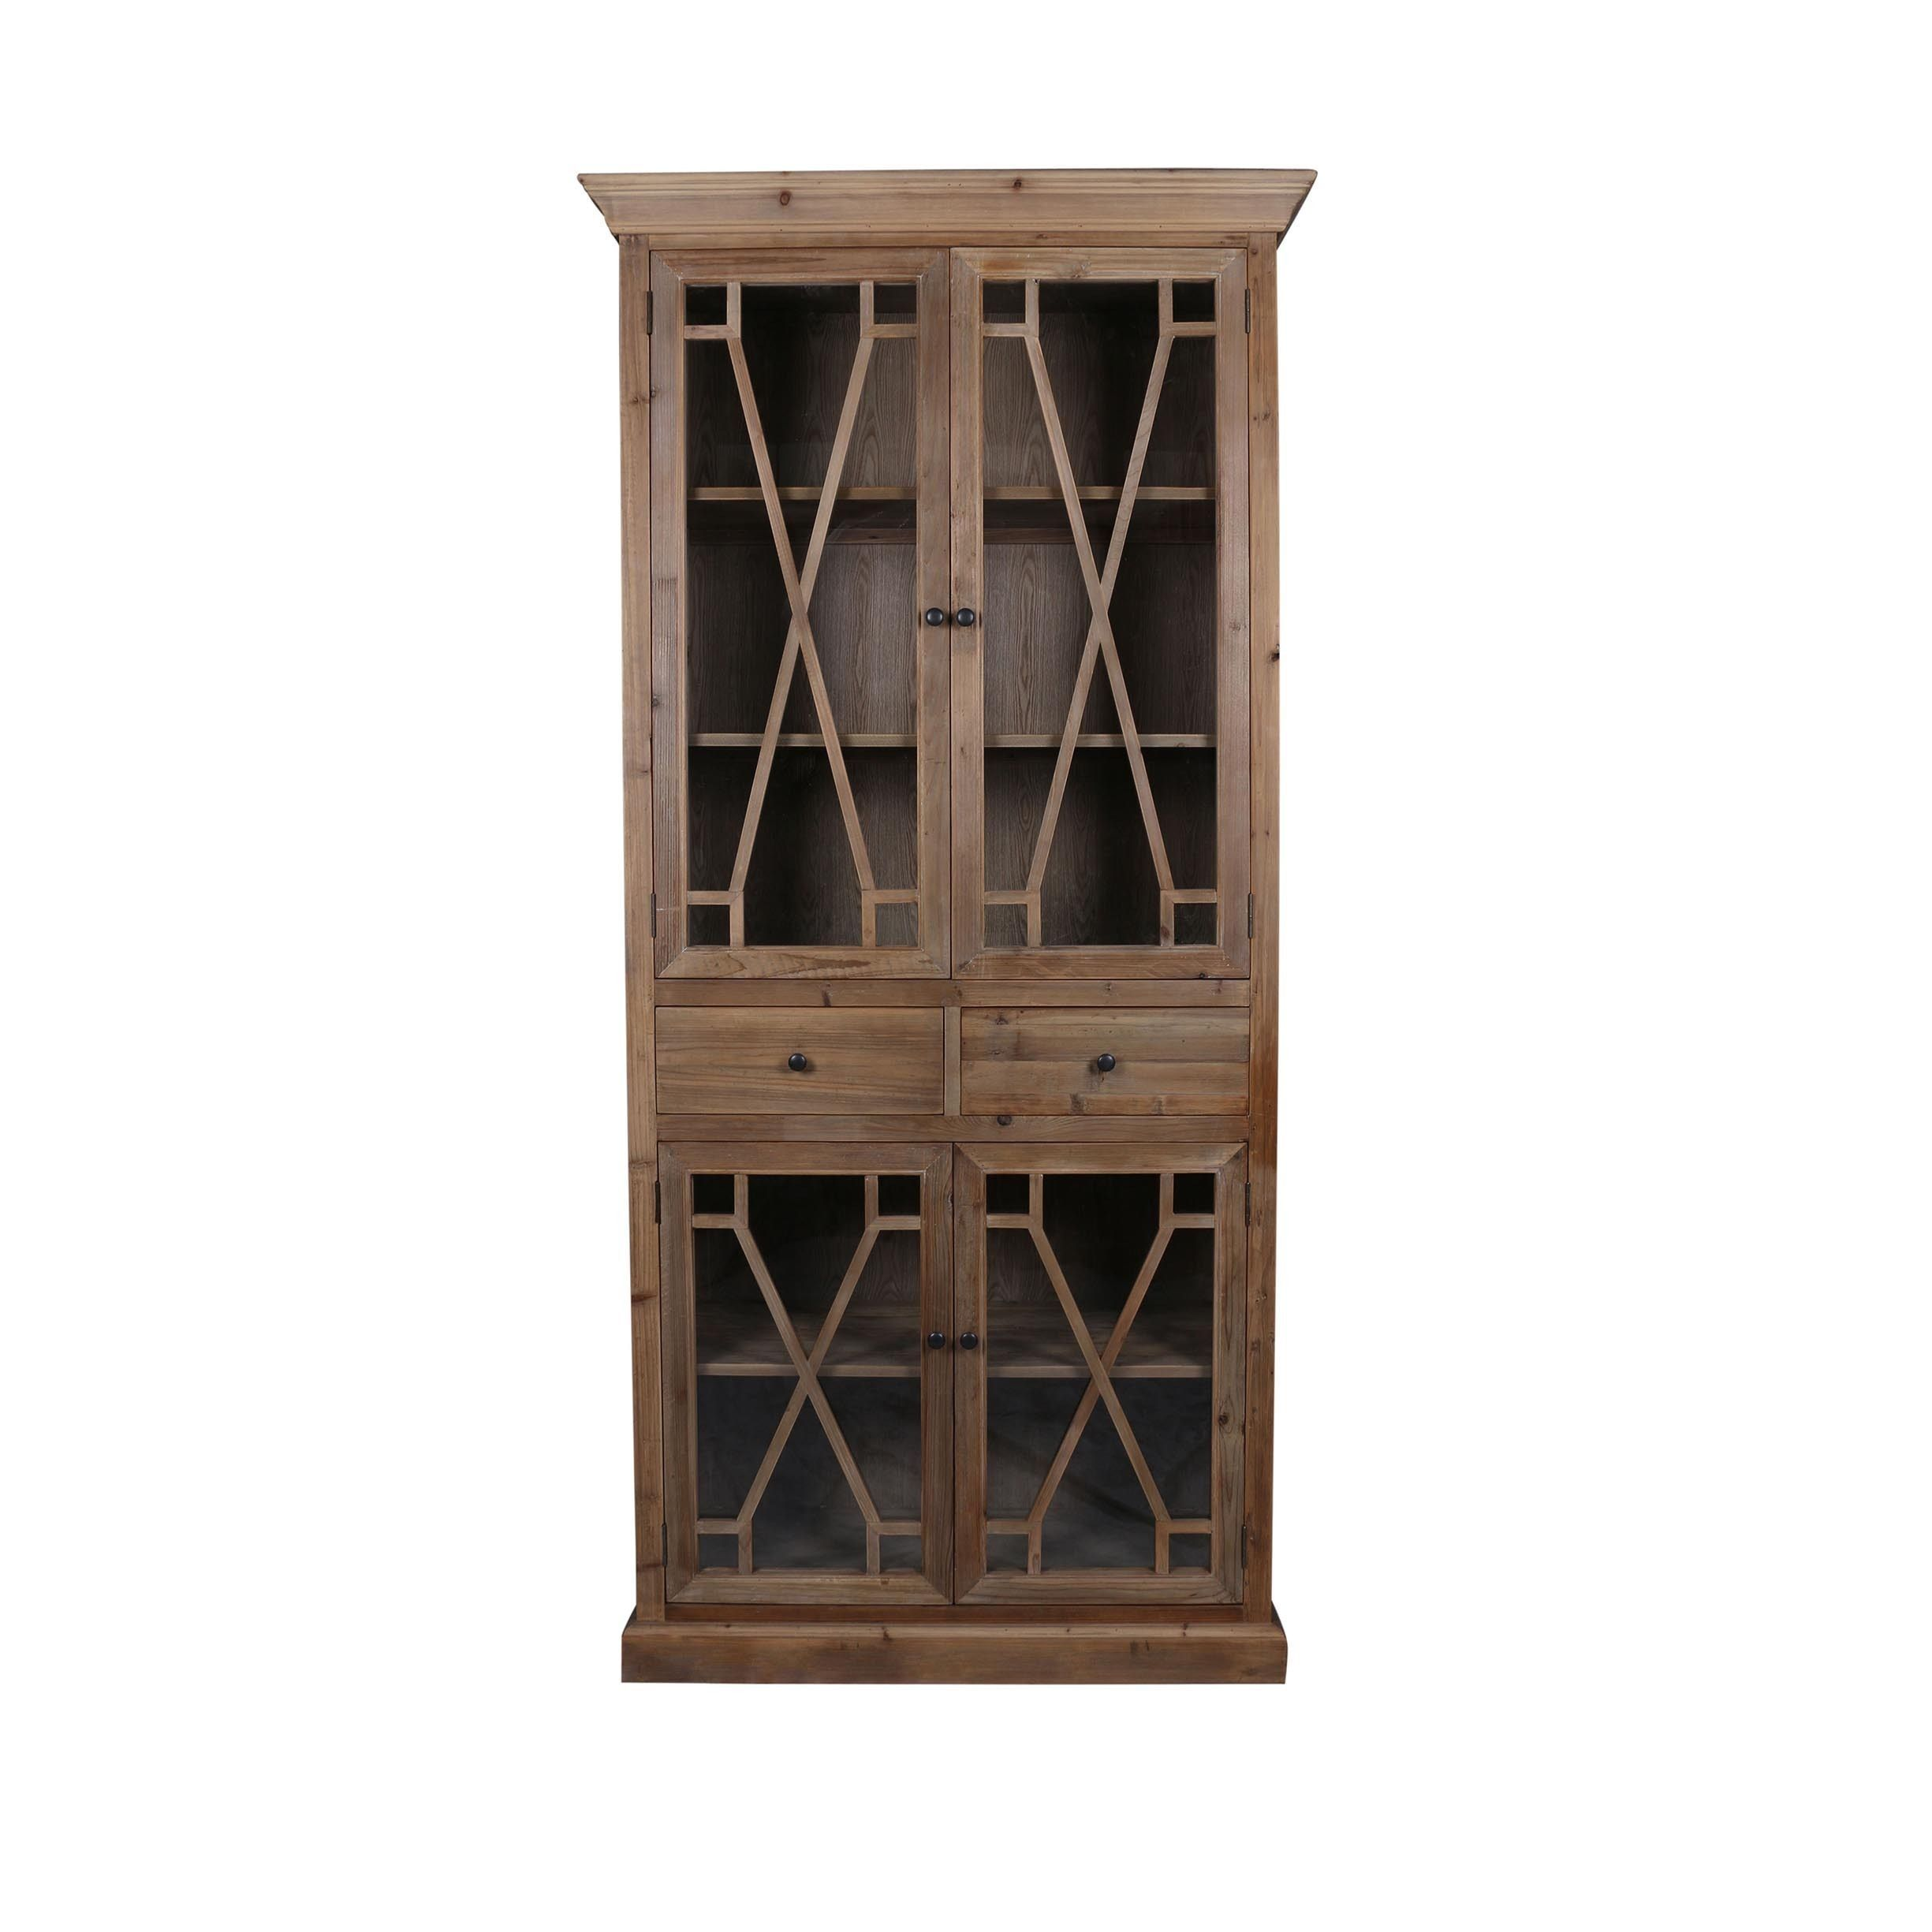 Aurelle home french double door cabinet products pinterest